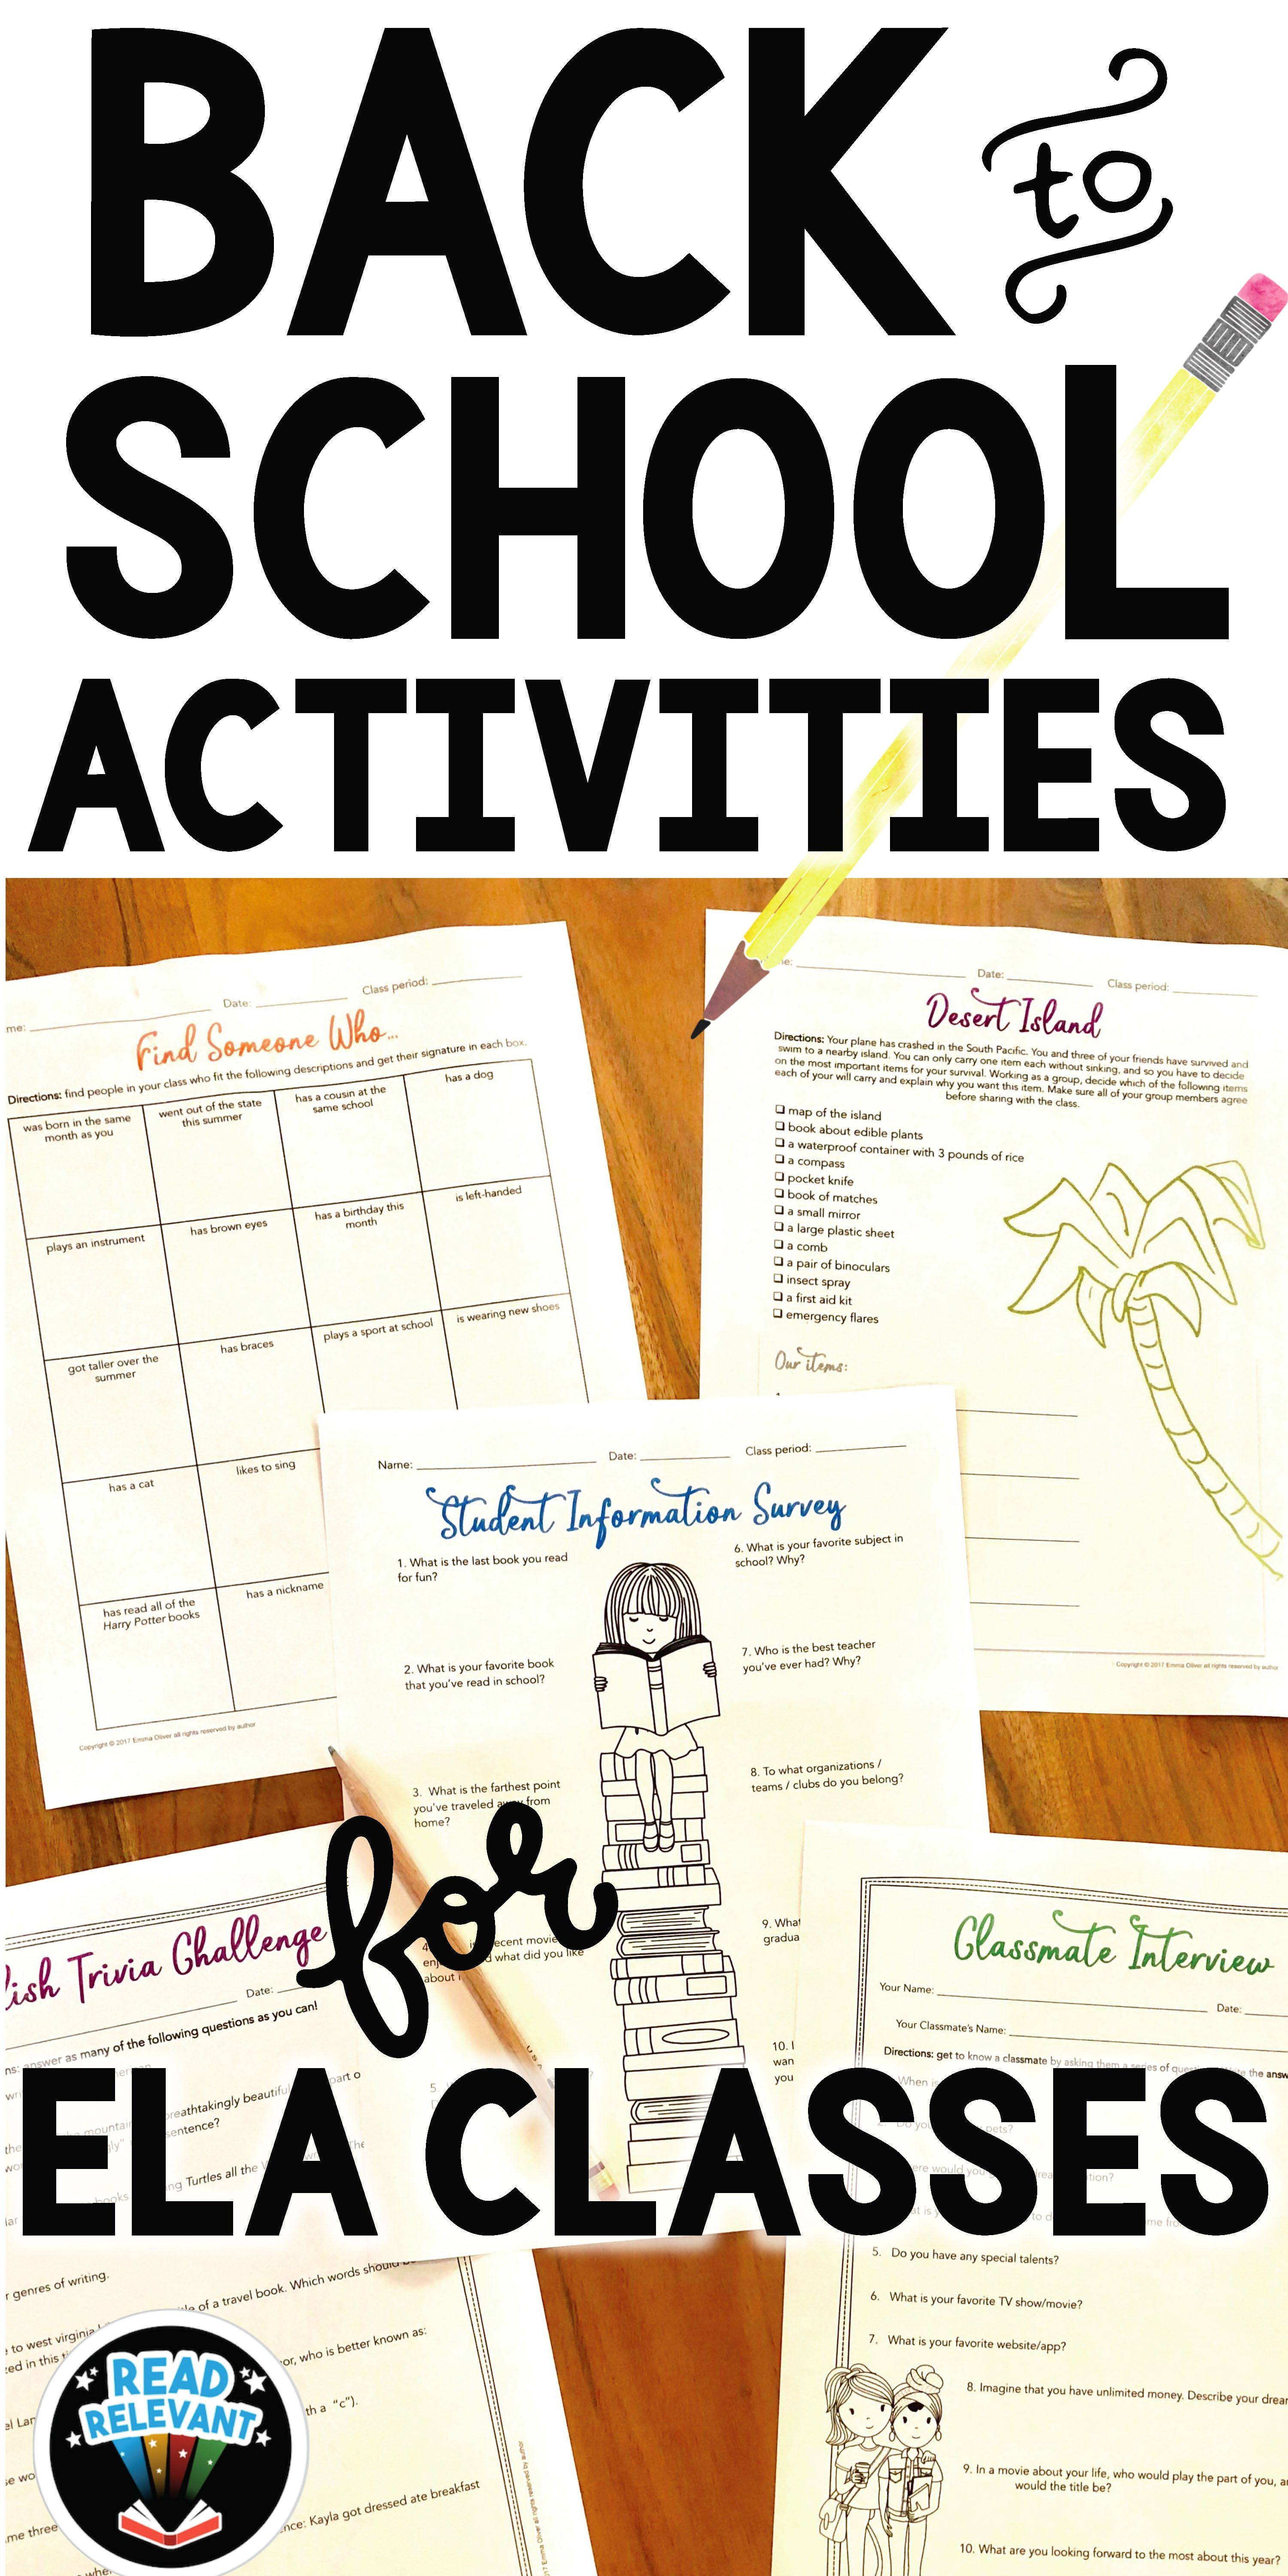 Back to School Activities for English Classes   Everthing